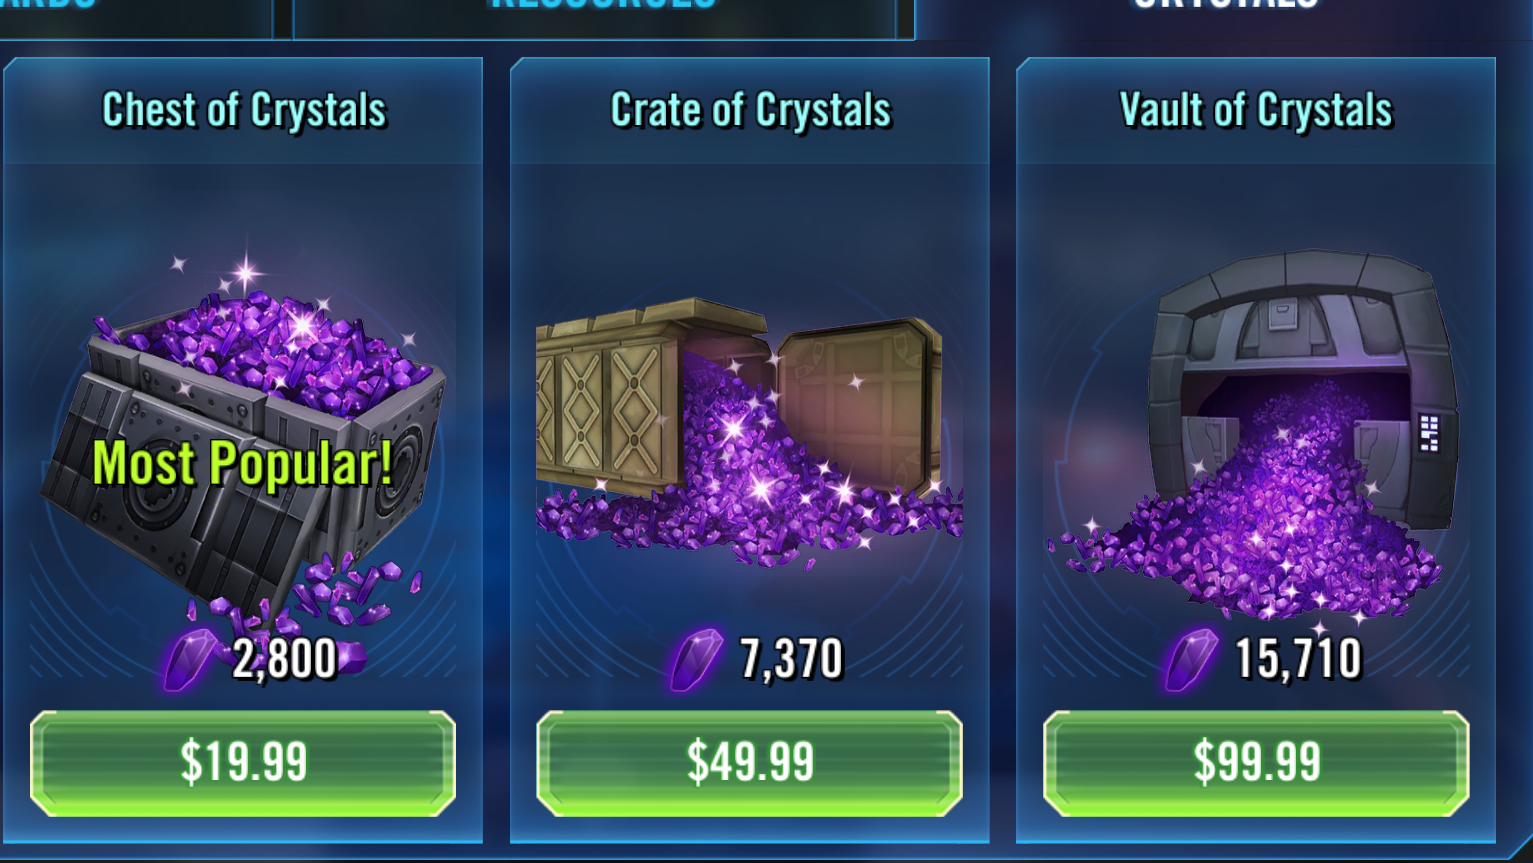 Not so micro transactions